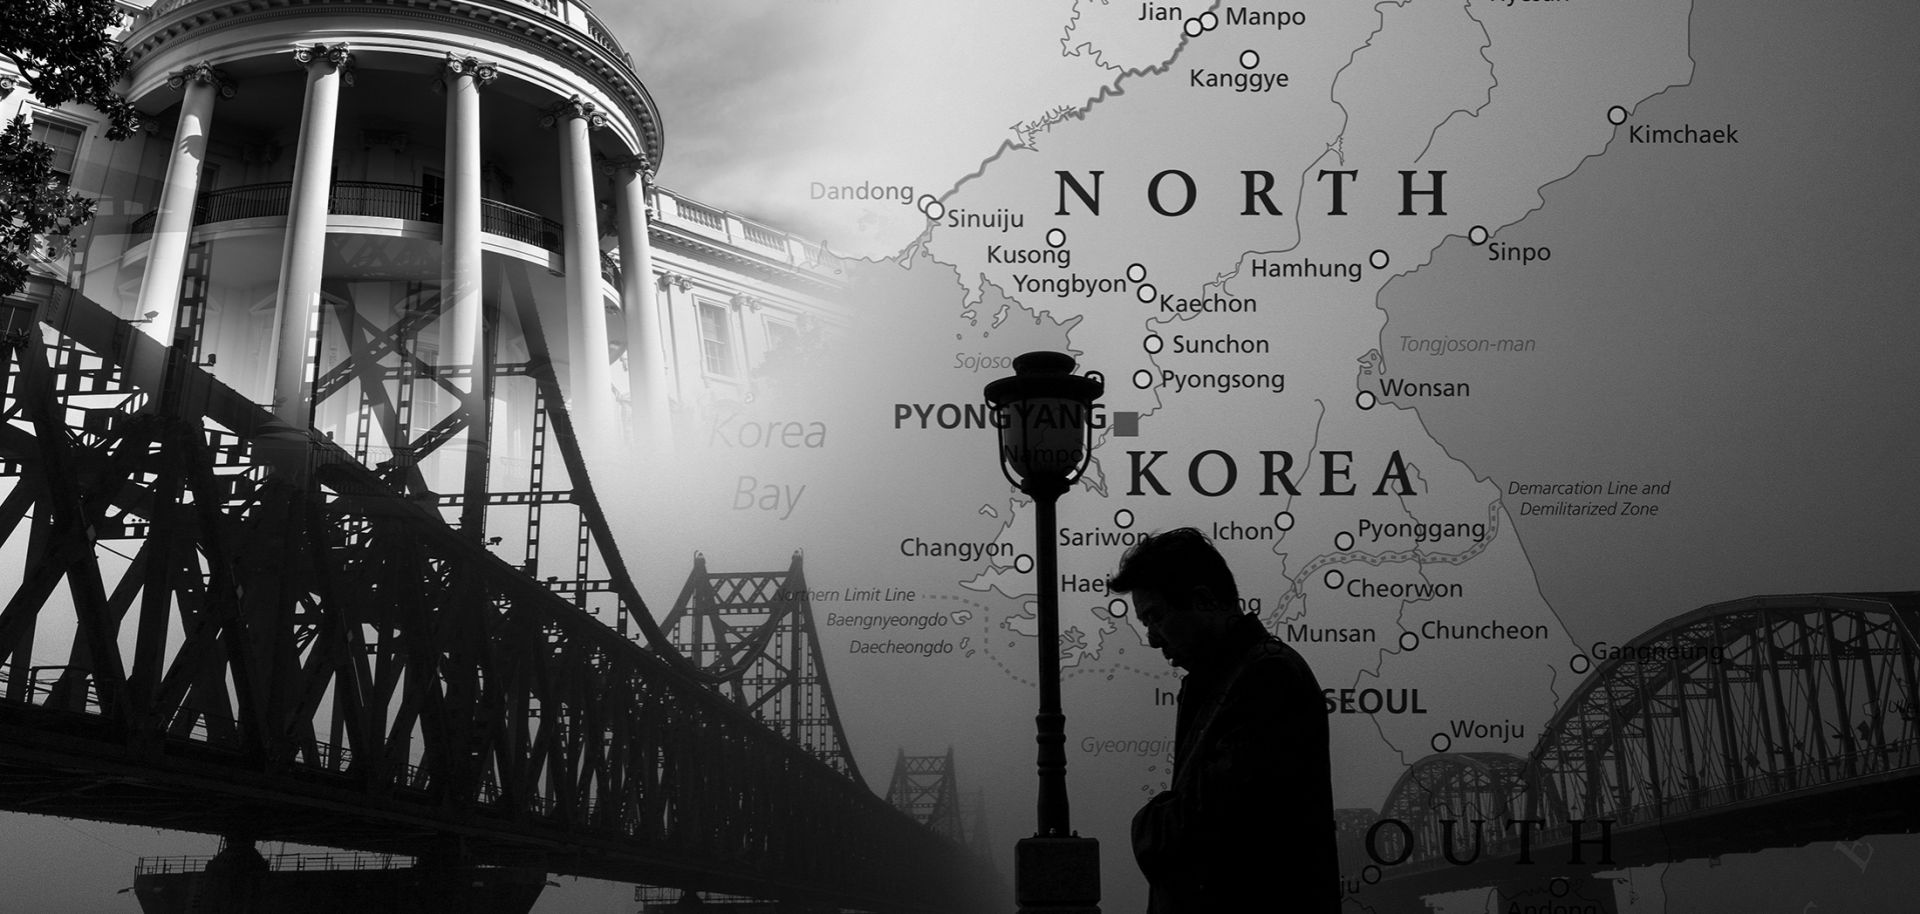 North Korea is making every effort to broadcast that it feels it can tolerate war on its territory far better than the United States could, having withstood the Japanese invasion, World War II and the Korean War.